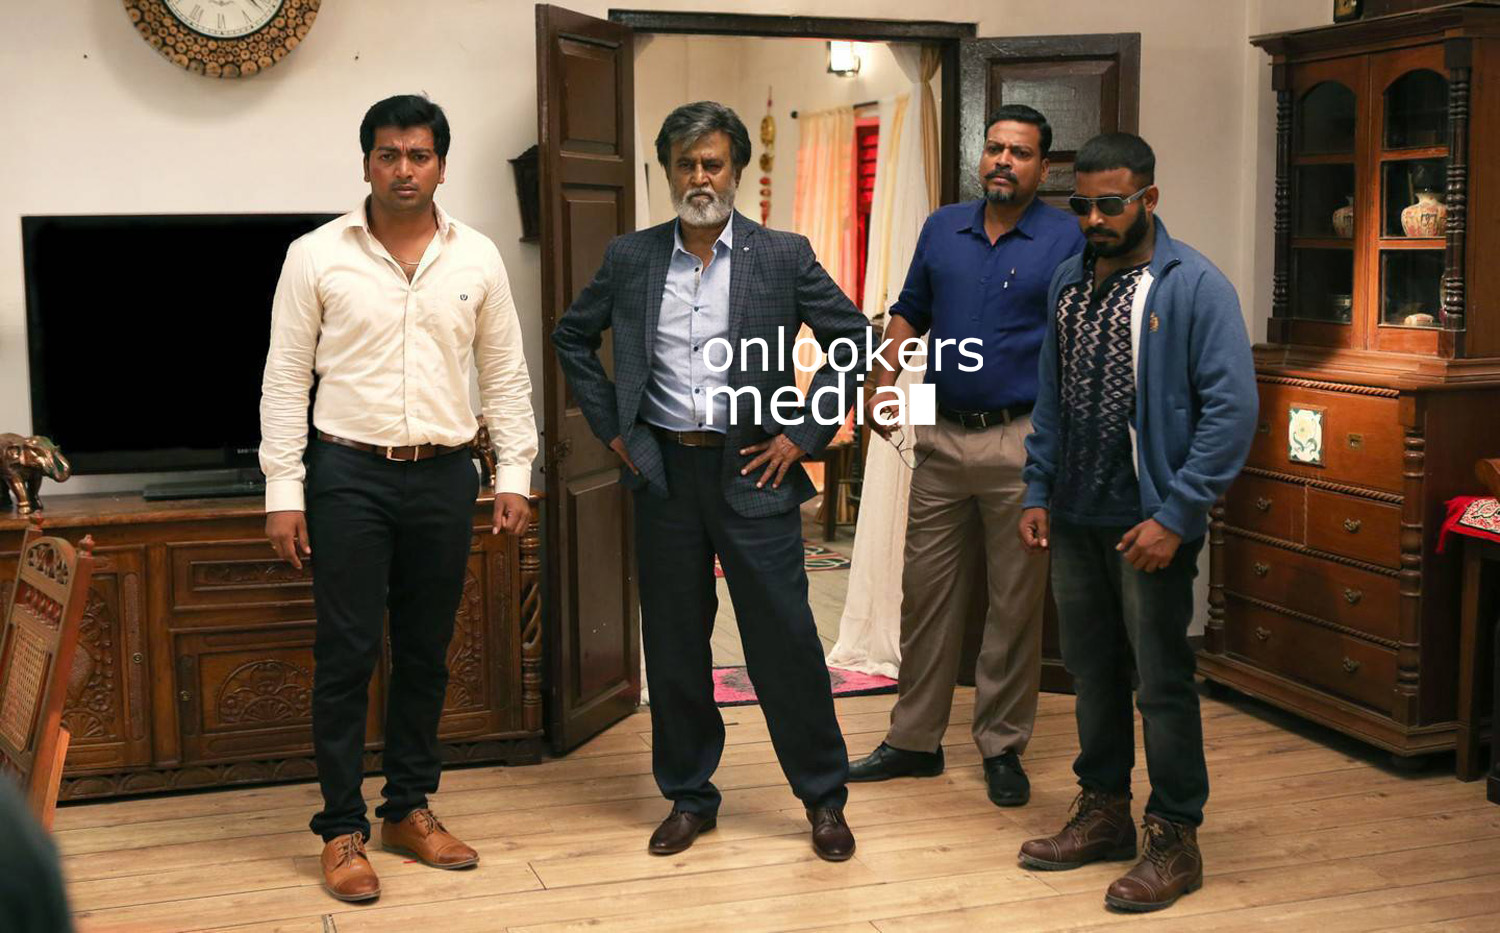 http://onlookersmedia.in/wp-content/uploads/2016/07/Rajinikanth-Kabali-stills-photos-images-pics-5.jpg